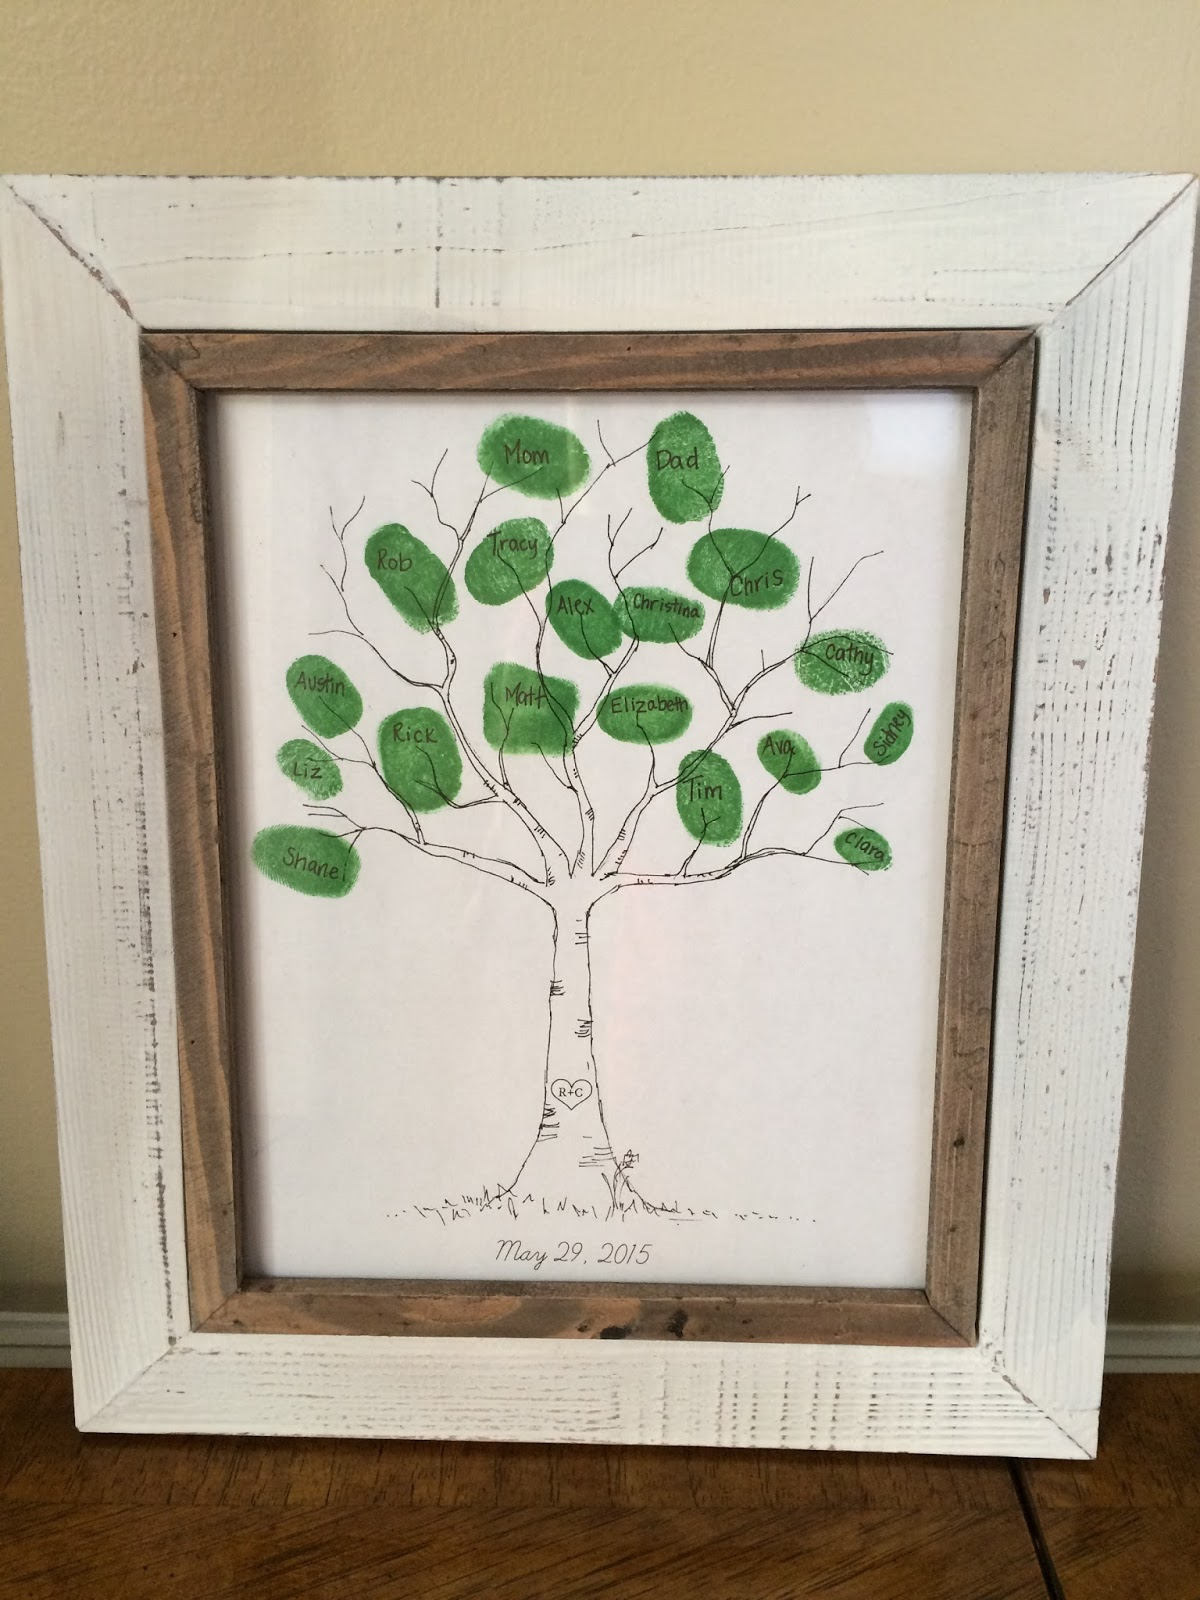 keeping up with the kiddos family thumbprint tree 50th anniversary gifts